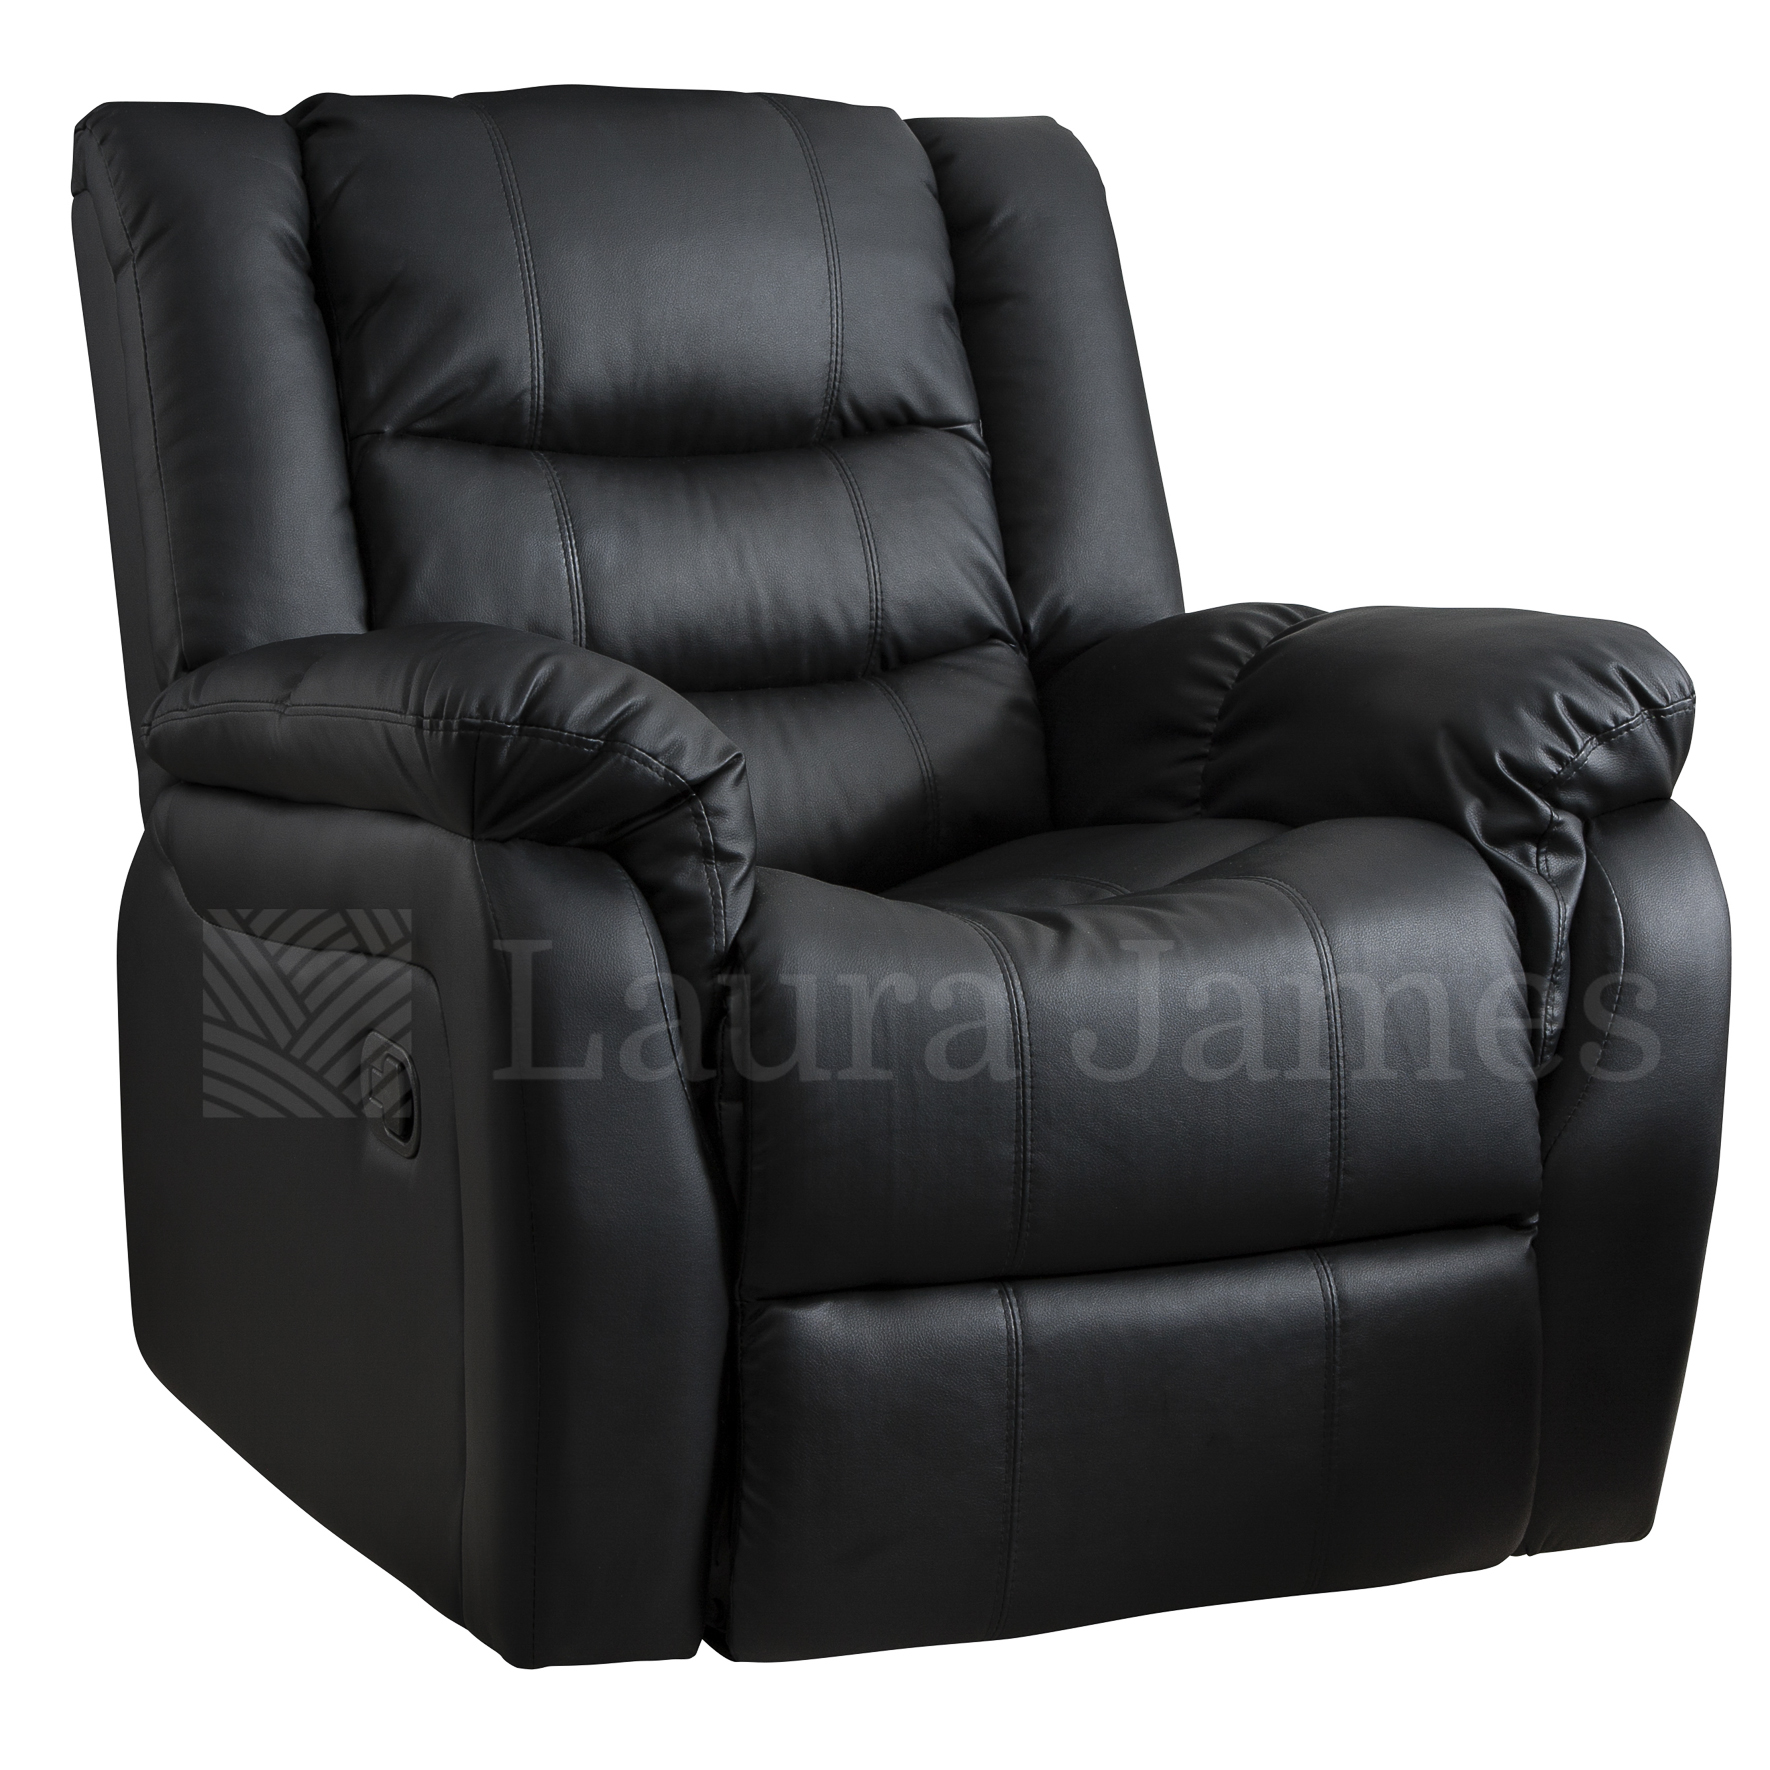 PU Leather Recliner Armchair